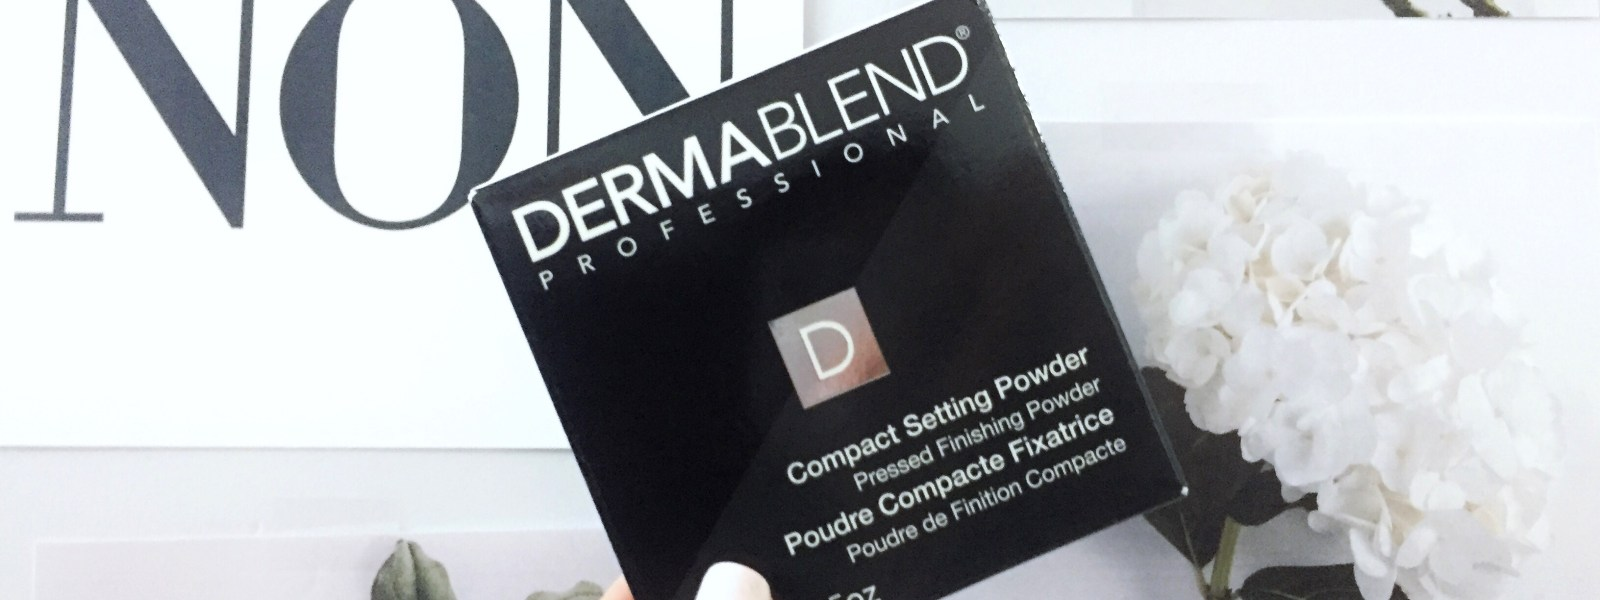 First Impression: Dermablend Pro's Compact Setting Powder